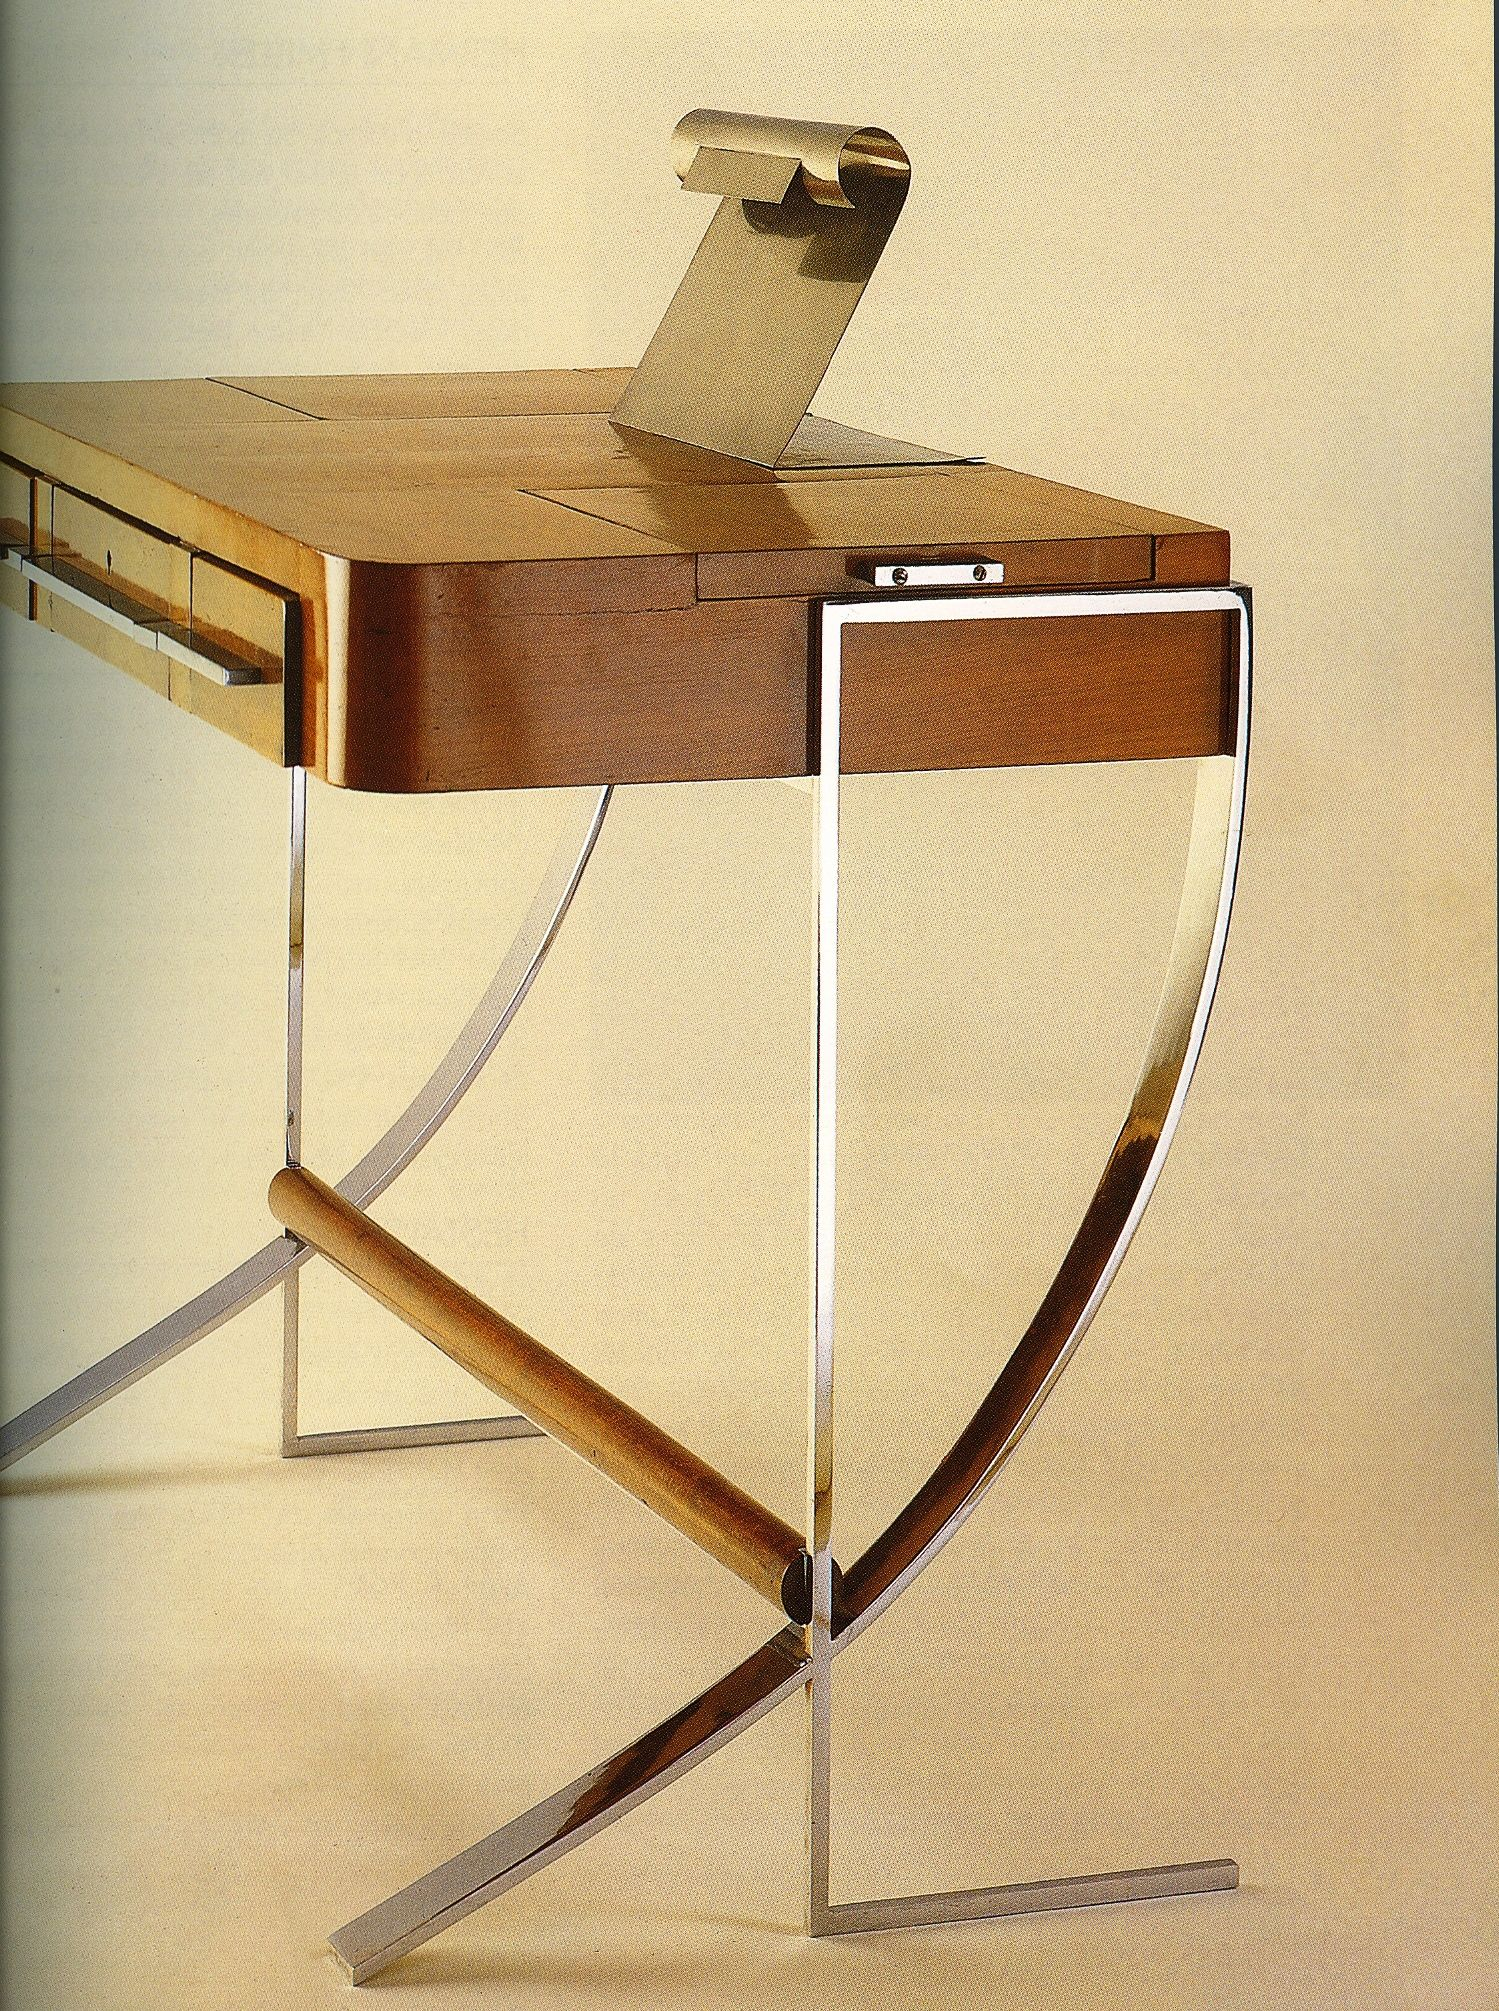 Rene Herbst Desk | Tables | Pinterest | Desks, Furniture ideas and ...